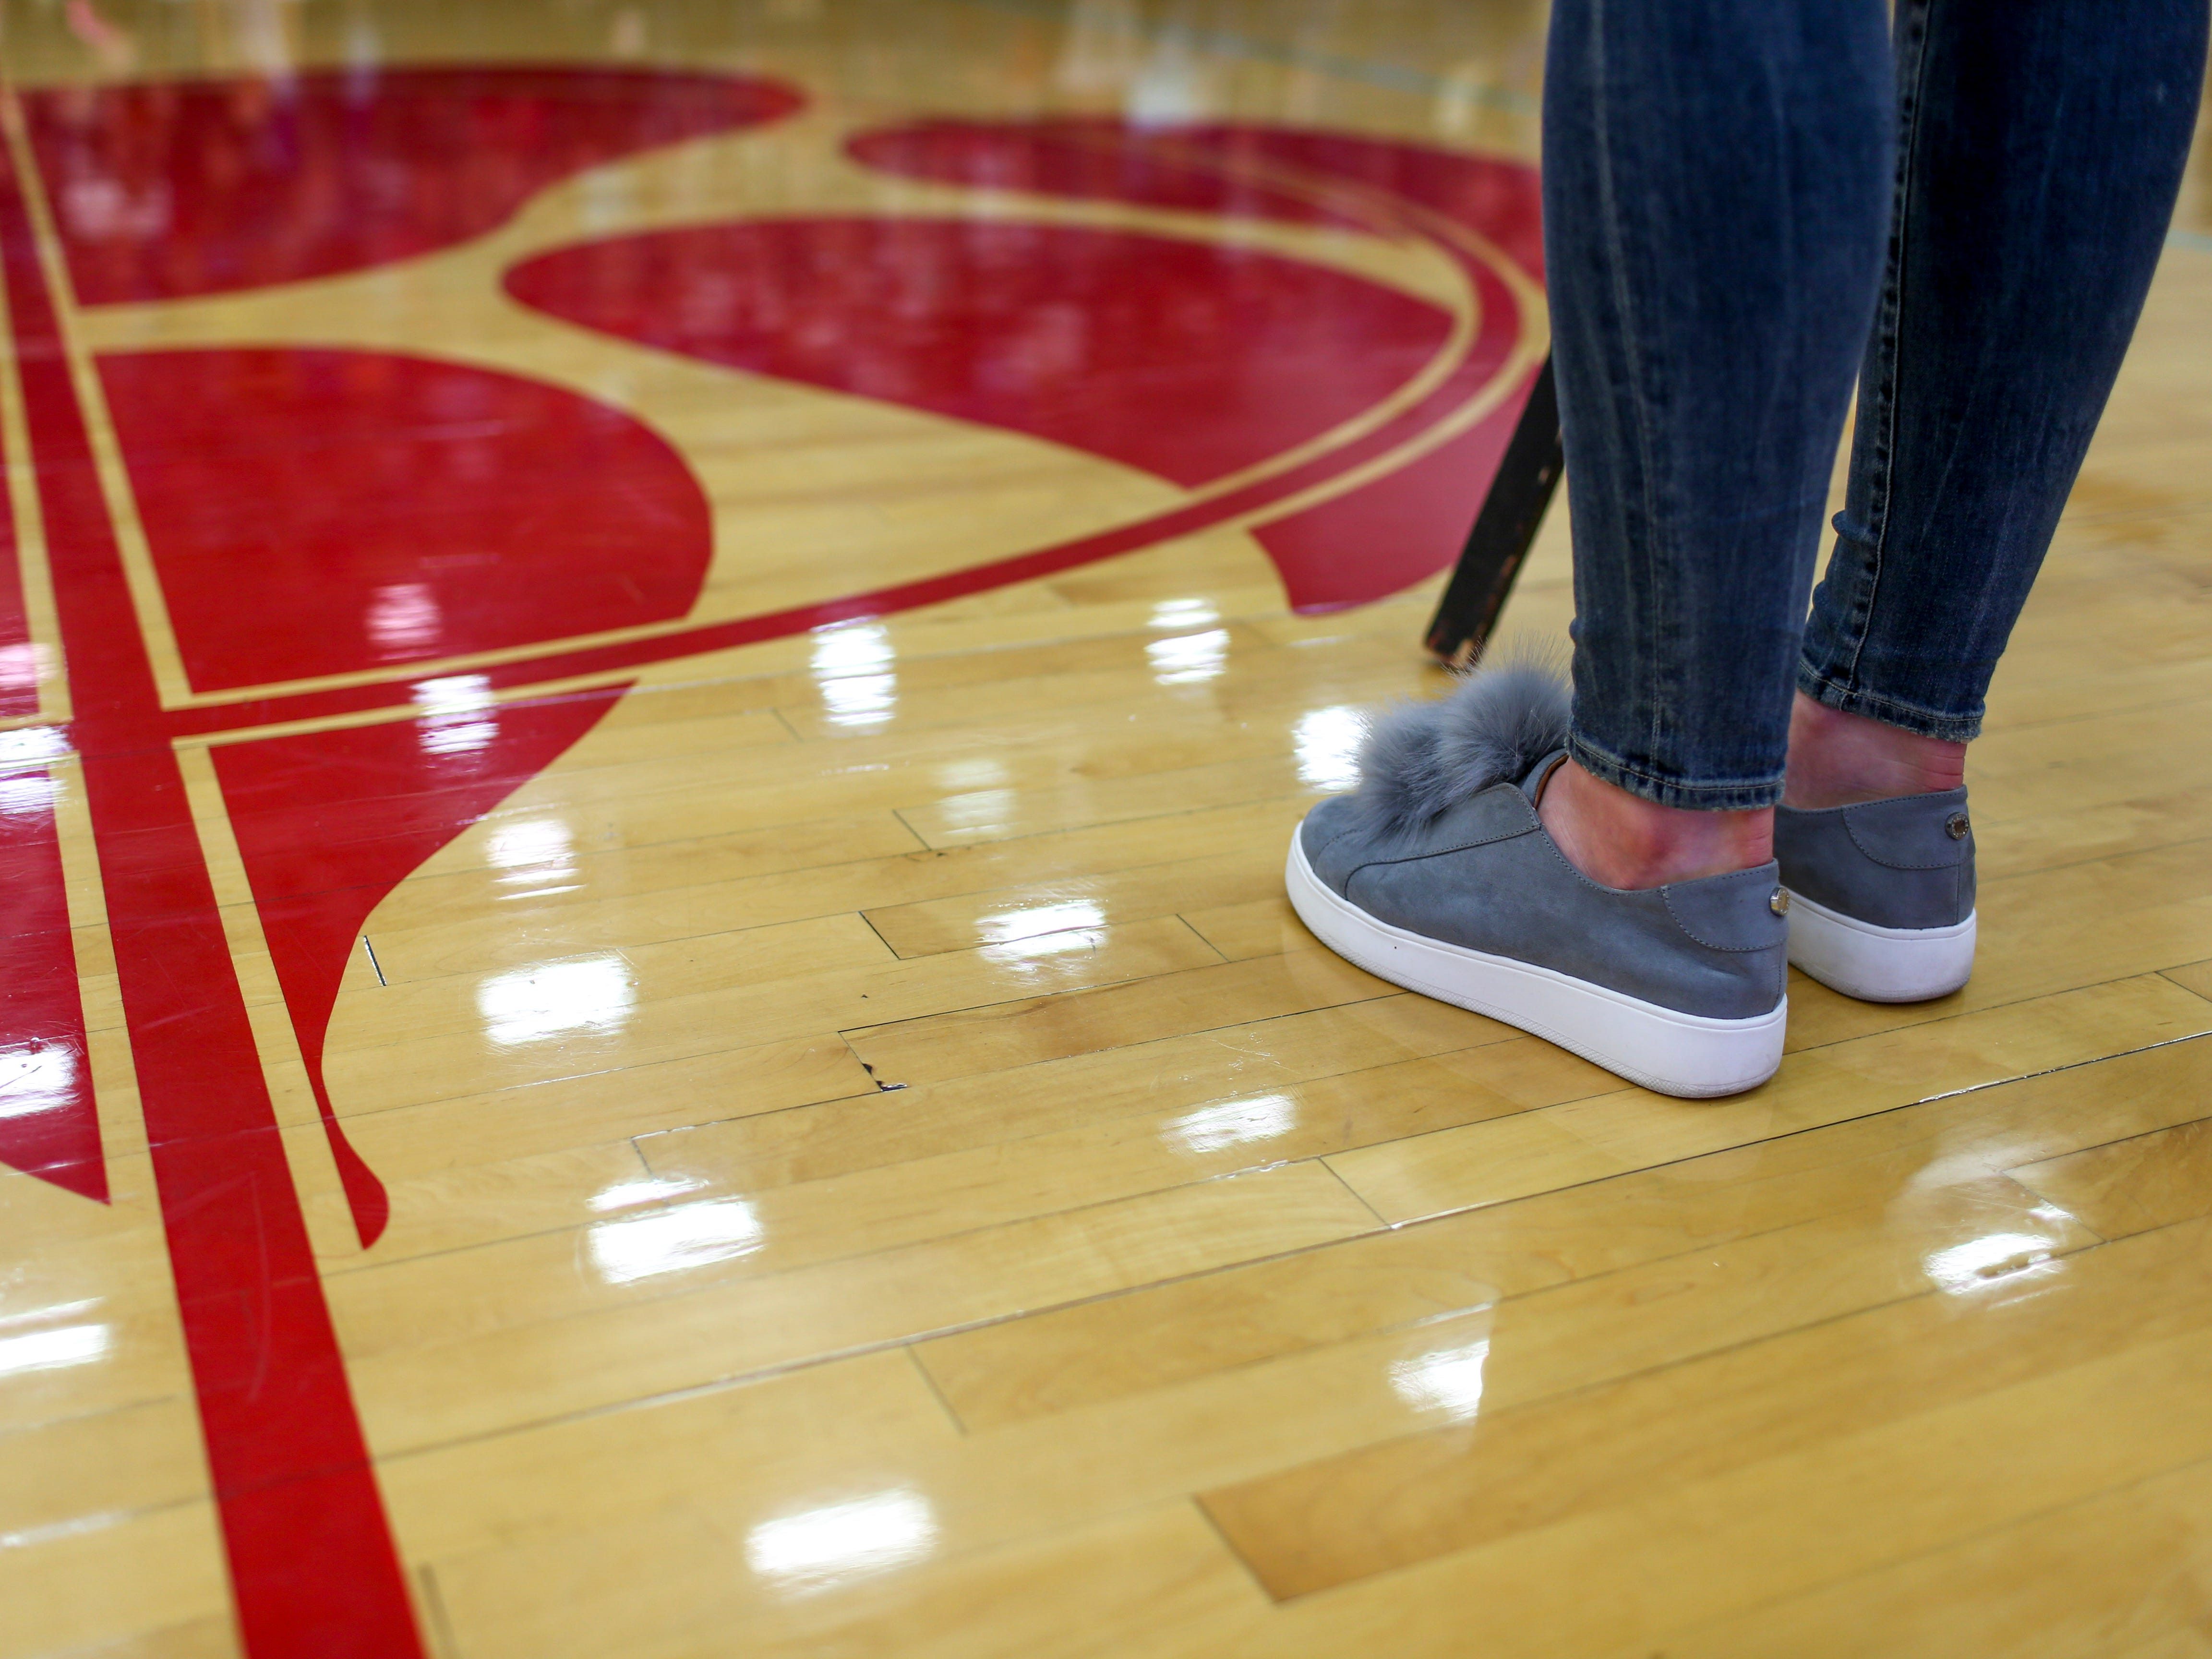 Anna Jones dons shoes with fluffy parts on the laces during the jersey retirement of her old number 25 jersey at University School of Jackson in Jackson, Tenn., on Friday, Dec. 7, 2018.